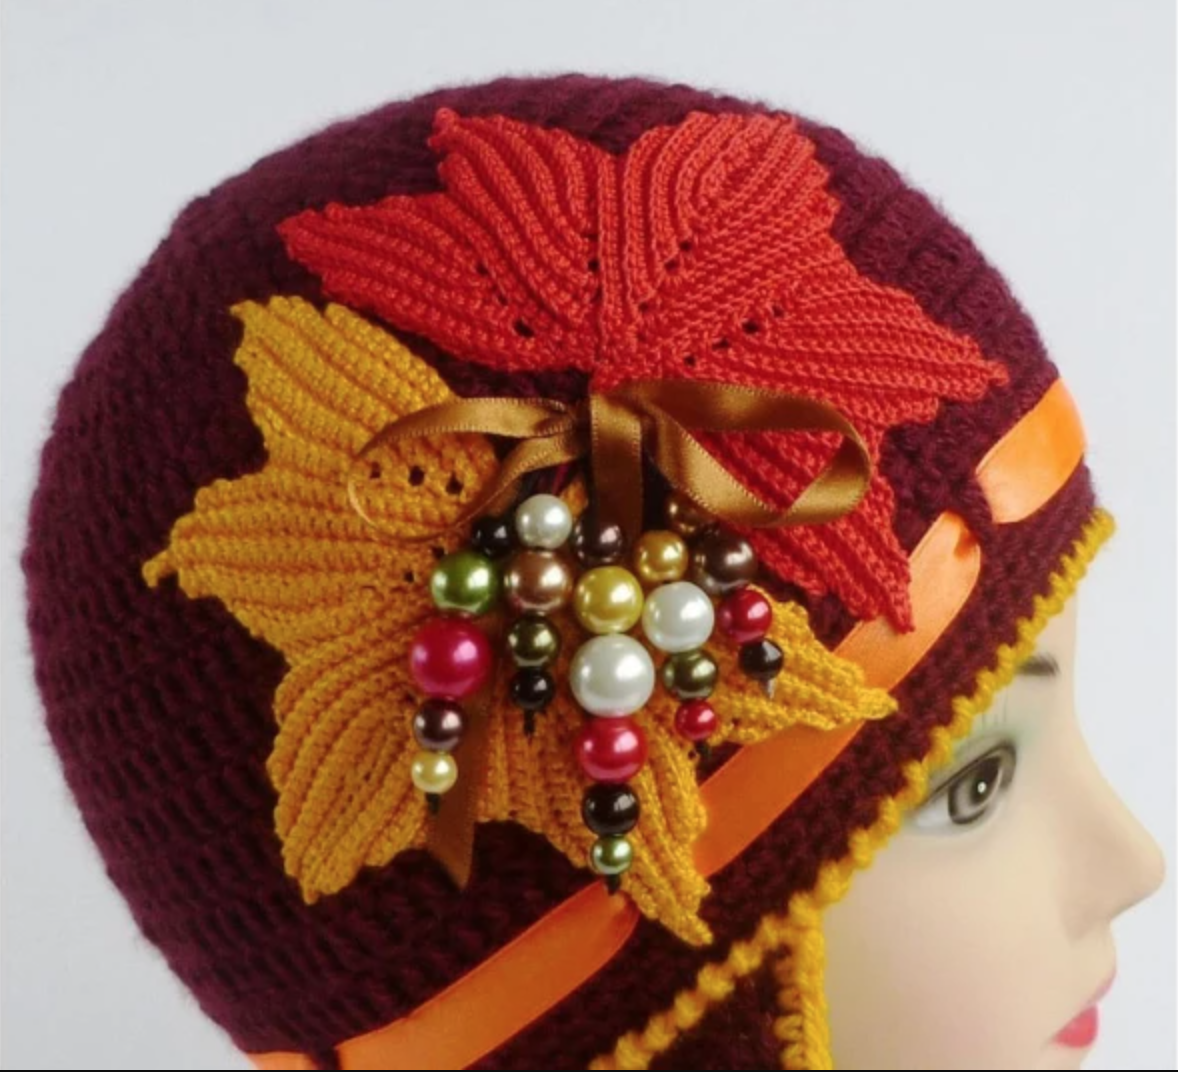 mannequin wearing crochet autumn hat